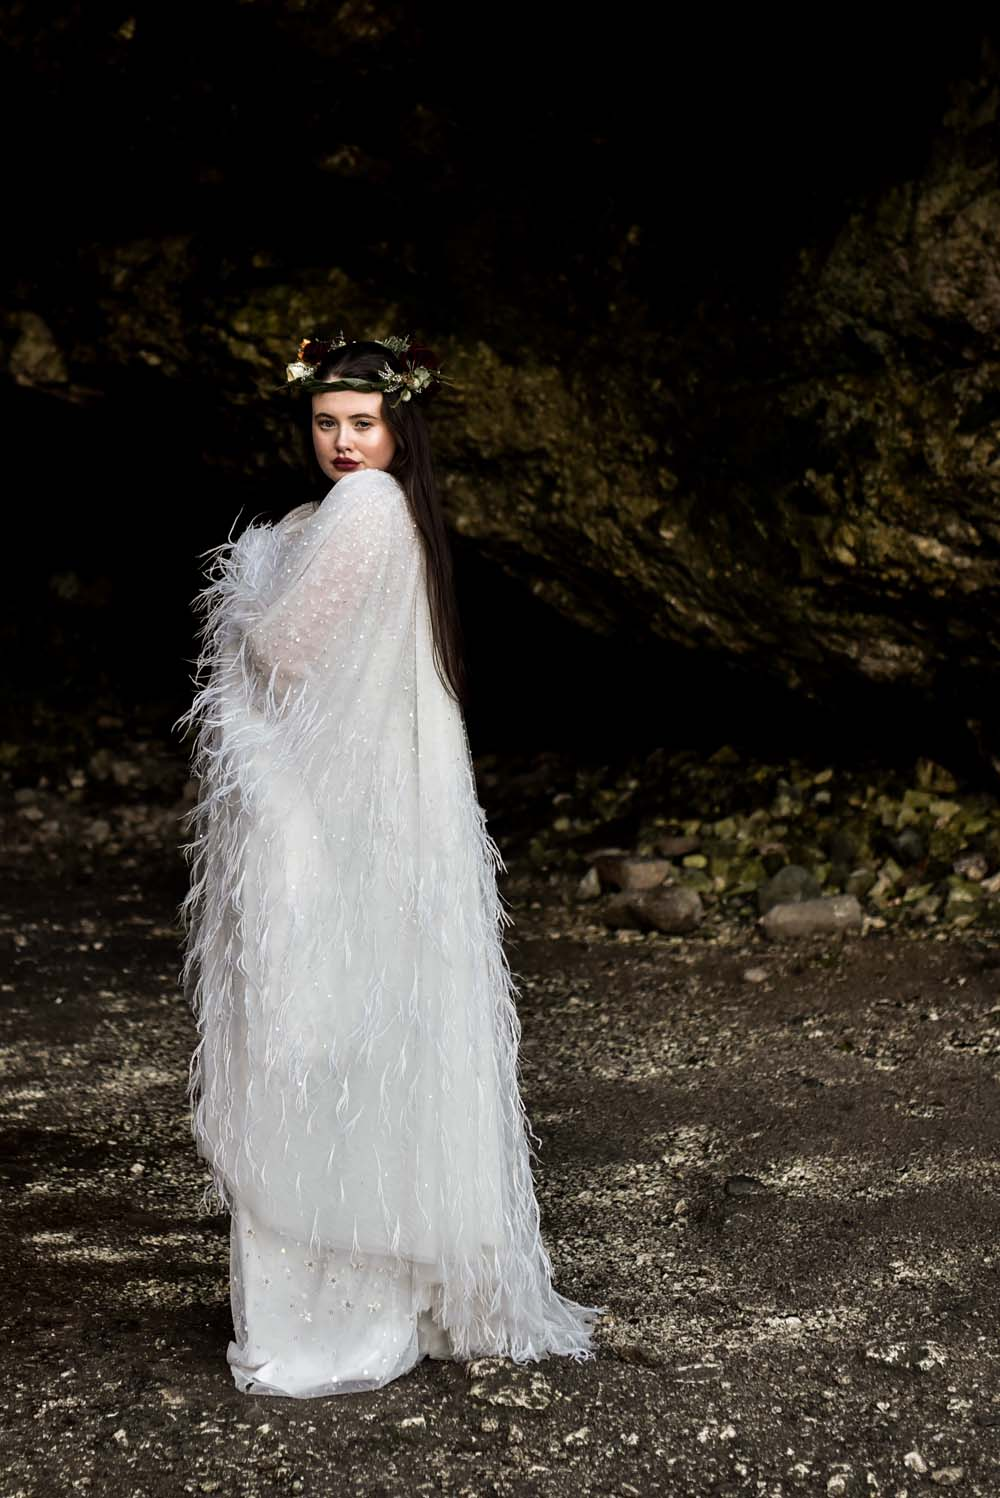 Dress Gown Bride Bridal Eliza Jane Howell Celestial Stars Starry Feather Cape Flower Crown Game Of Thrones Wedding Tara Florence